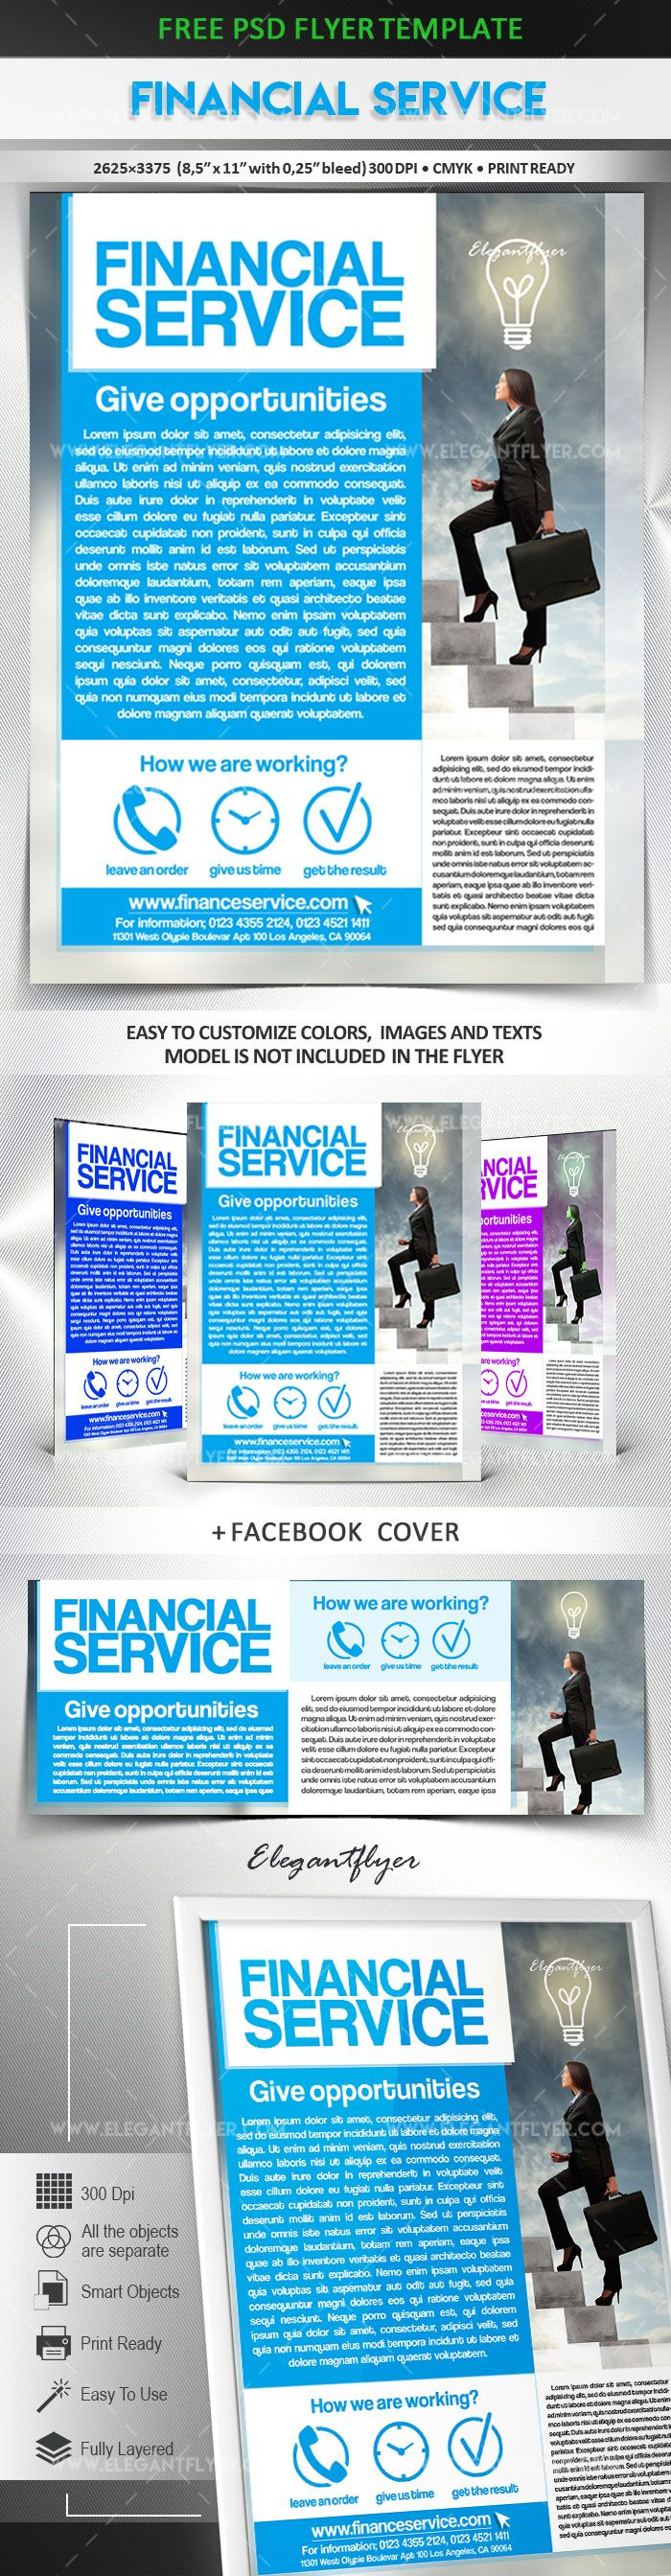 Financial Service Free Flyer Psd Template Free Flyers Templates